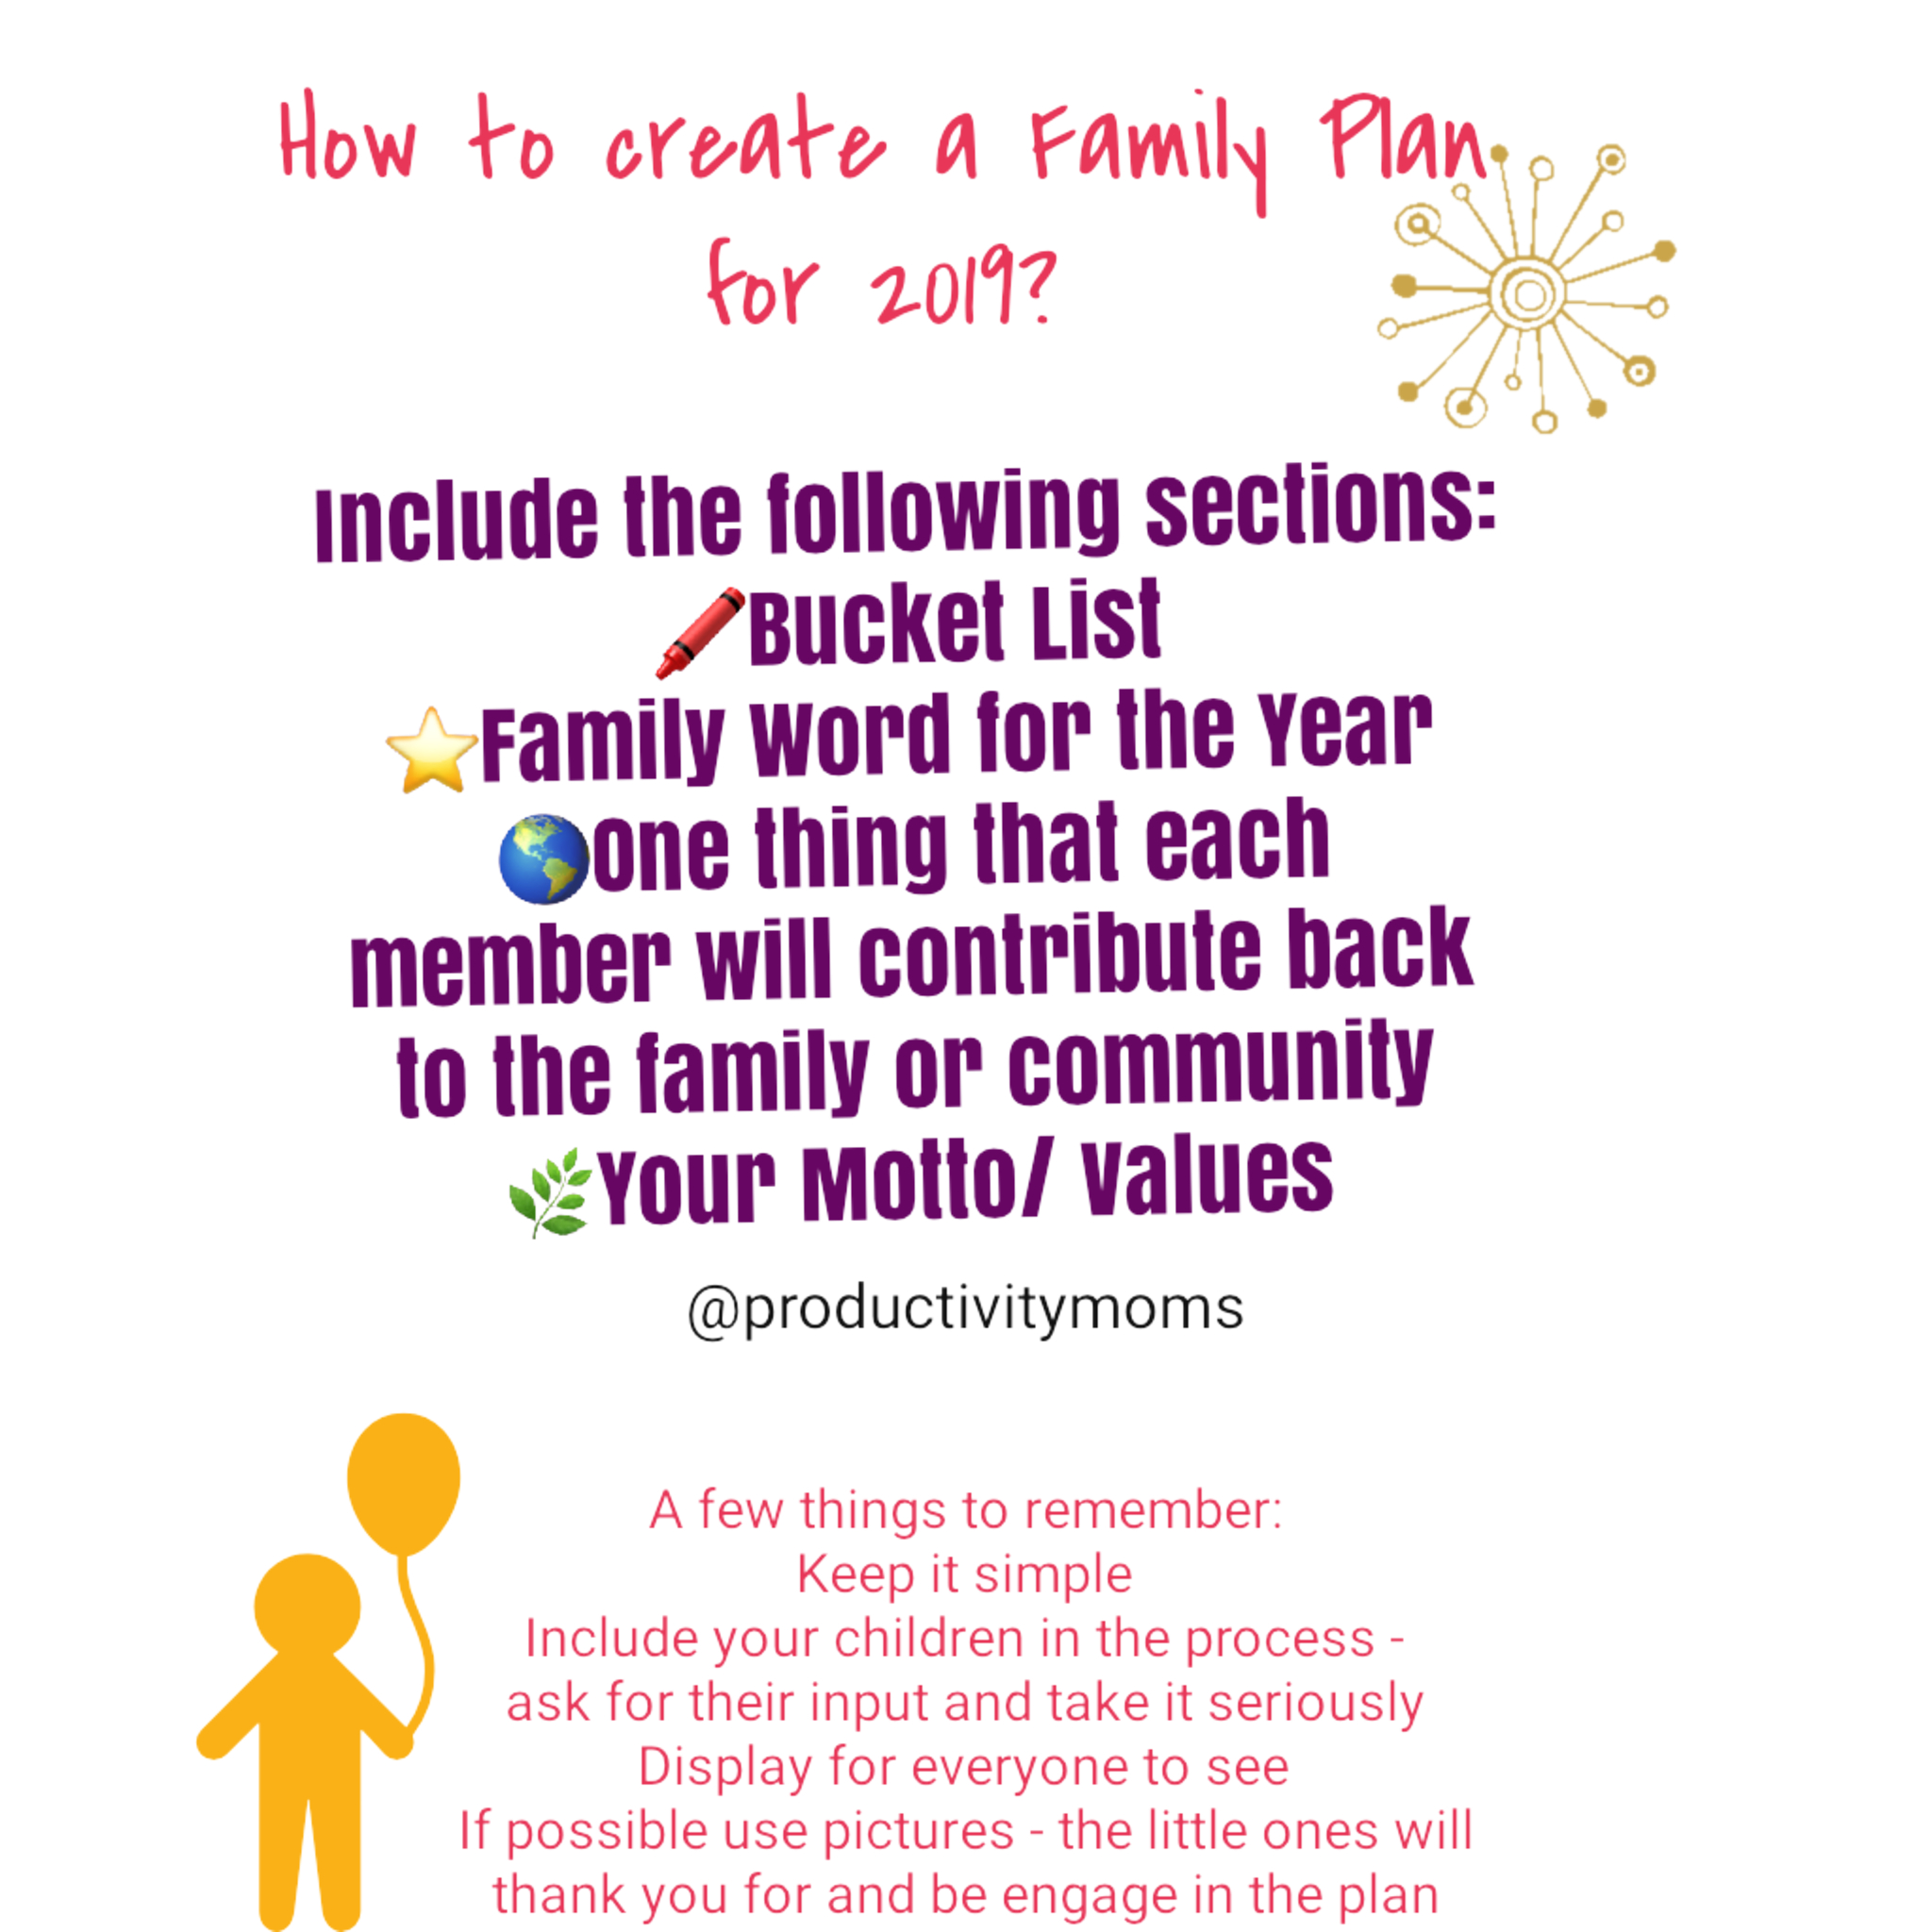 First determine what it is that you want to include and important to you.   We usually keep it one sheet and simple. We also try to make it visual (for the little ones) by putting pictures that resonates with our plan on the back of it (voila- your vision board).   In ours we include-   Bucket list-  activities we want to do as a family     family word of the year  - this is our mantra and easily reminds everyone what is it that we want to strive for or feel     goals  - what each family is contributing back to the family or want to do for themselves.     Show of Kindness - what are the acts that we will do this year to show that we care in our community, to our family, friends and ourselves.     Family Motto & Rules-  this is where we include what is it that we stand for and our rules for the years. Try to keep the rules to no more than 3.    the peole we want to spend time with most - this can be people that we want to keep in touch with or create a stronger bond as a family, or that we lost touch with and want to rekindle the relationship  and that's it! Our kids love it and feel a sense of accomplishment and understanding on how we will use the year.    And to make it easier for you, we have created this download where all you have to do is include the information in each box. Then you can use the back as your vision board and include the pictures. Go to Goodies to download it!